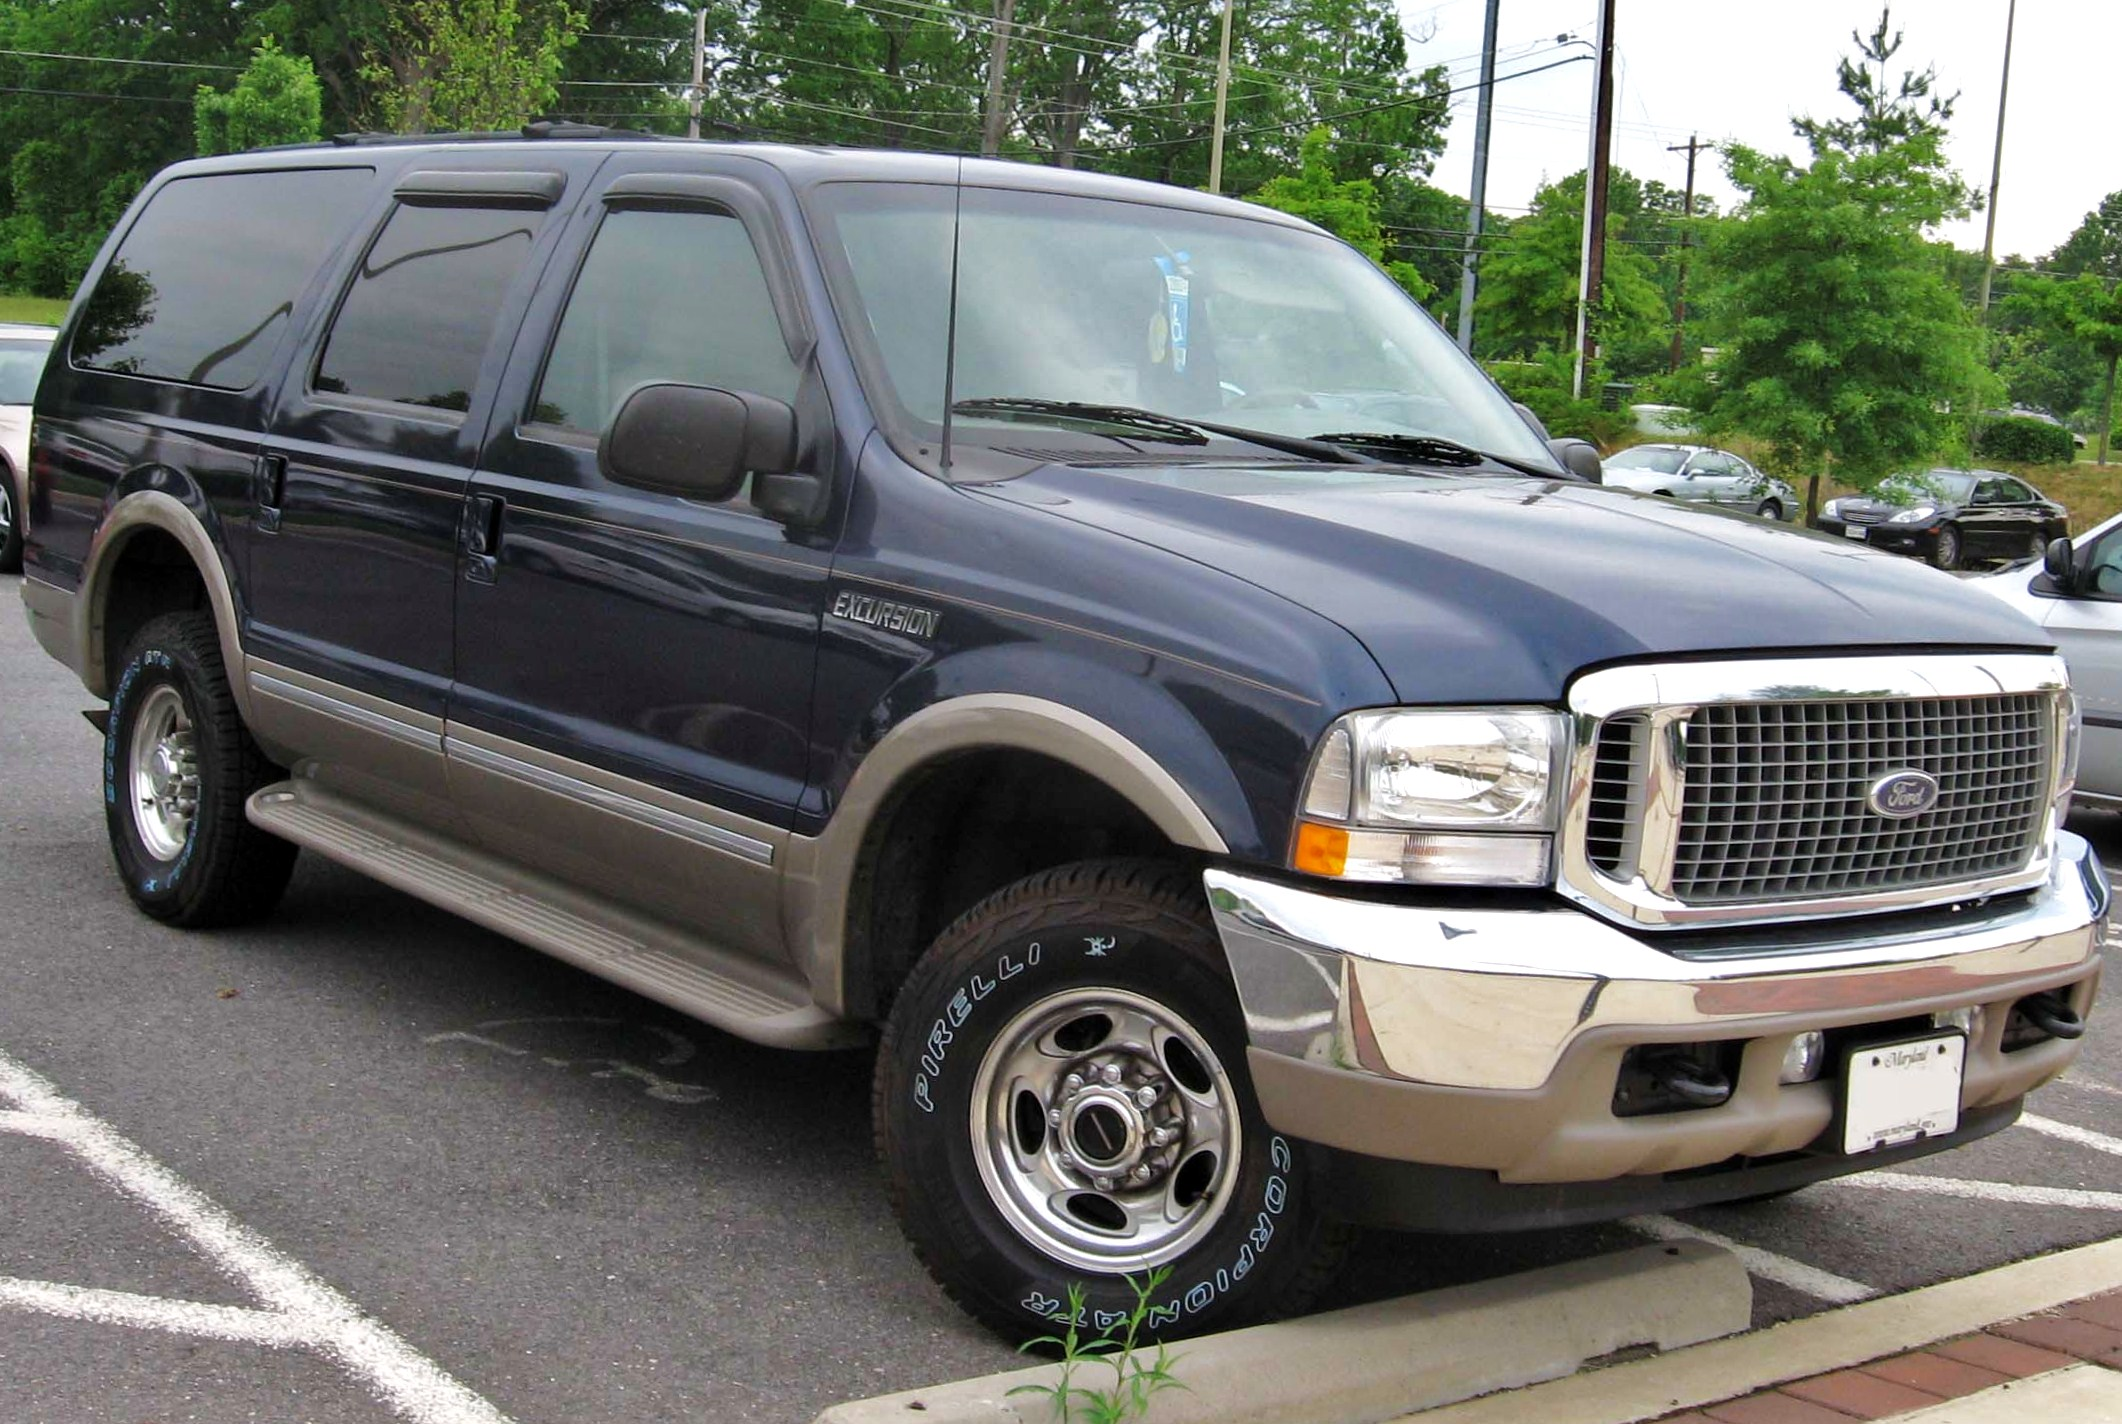 File:00-04 Ford Excursion.jpg - Wikimedia Commons